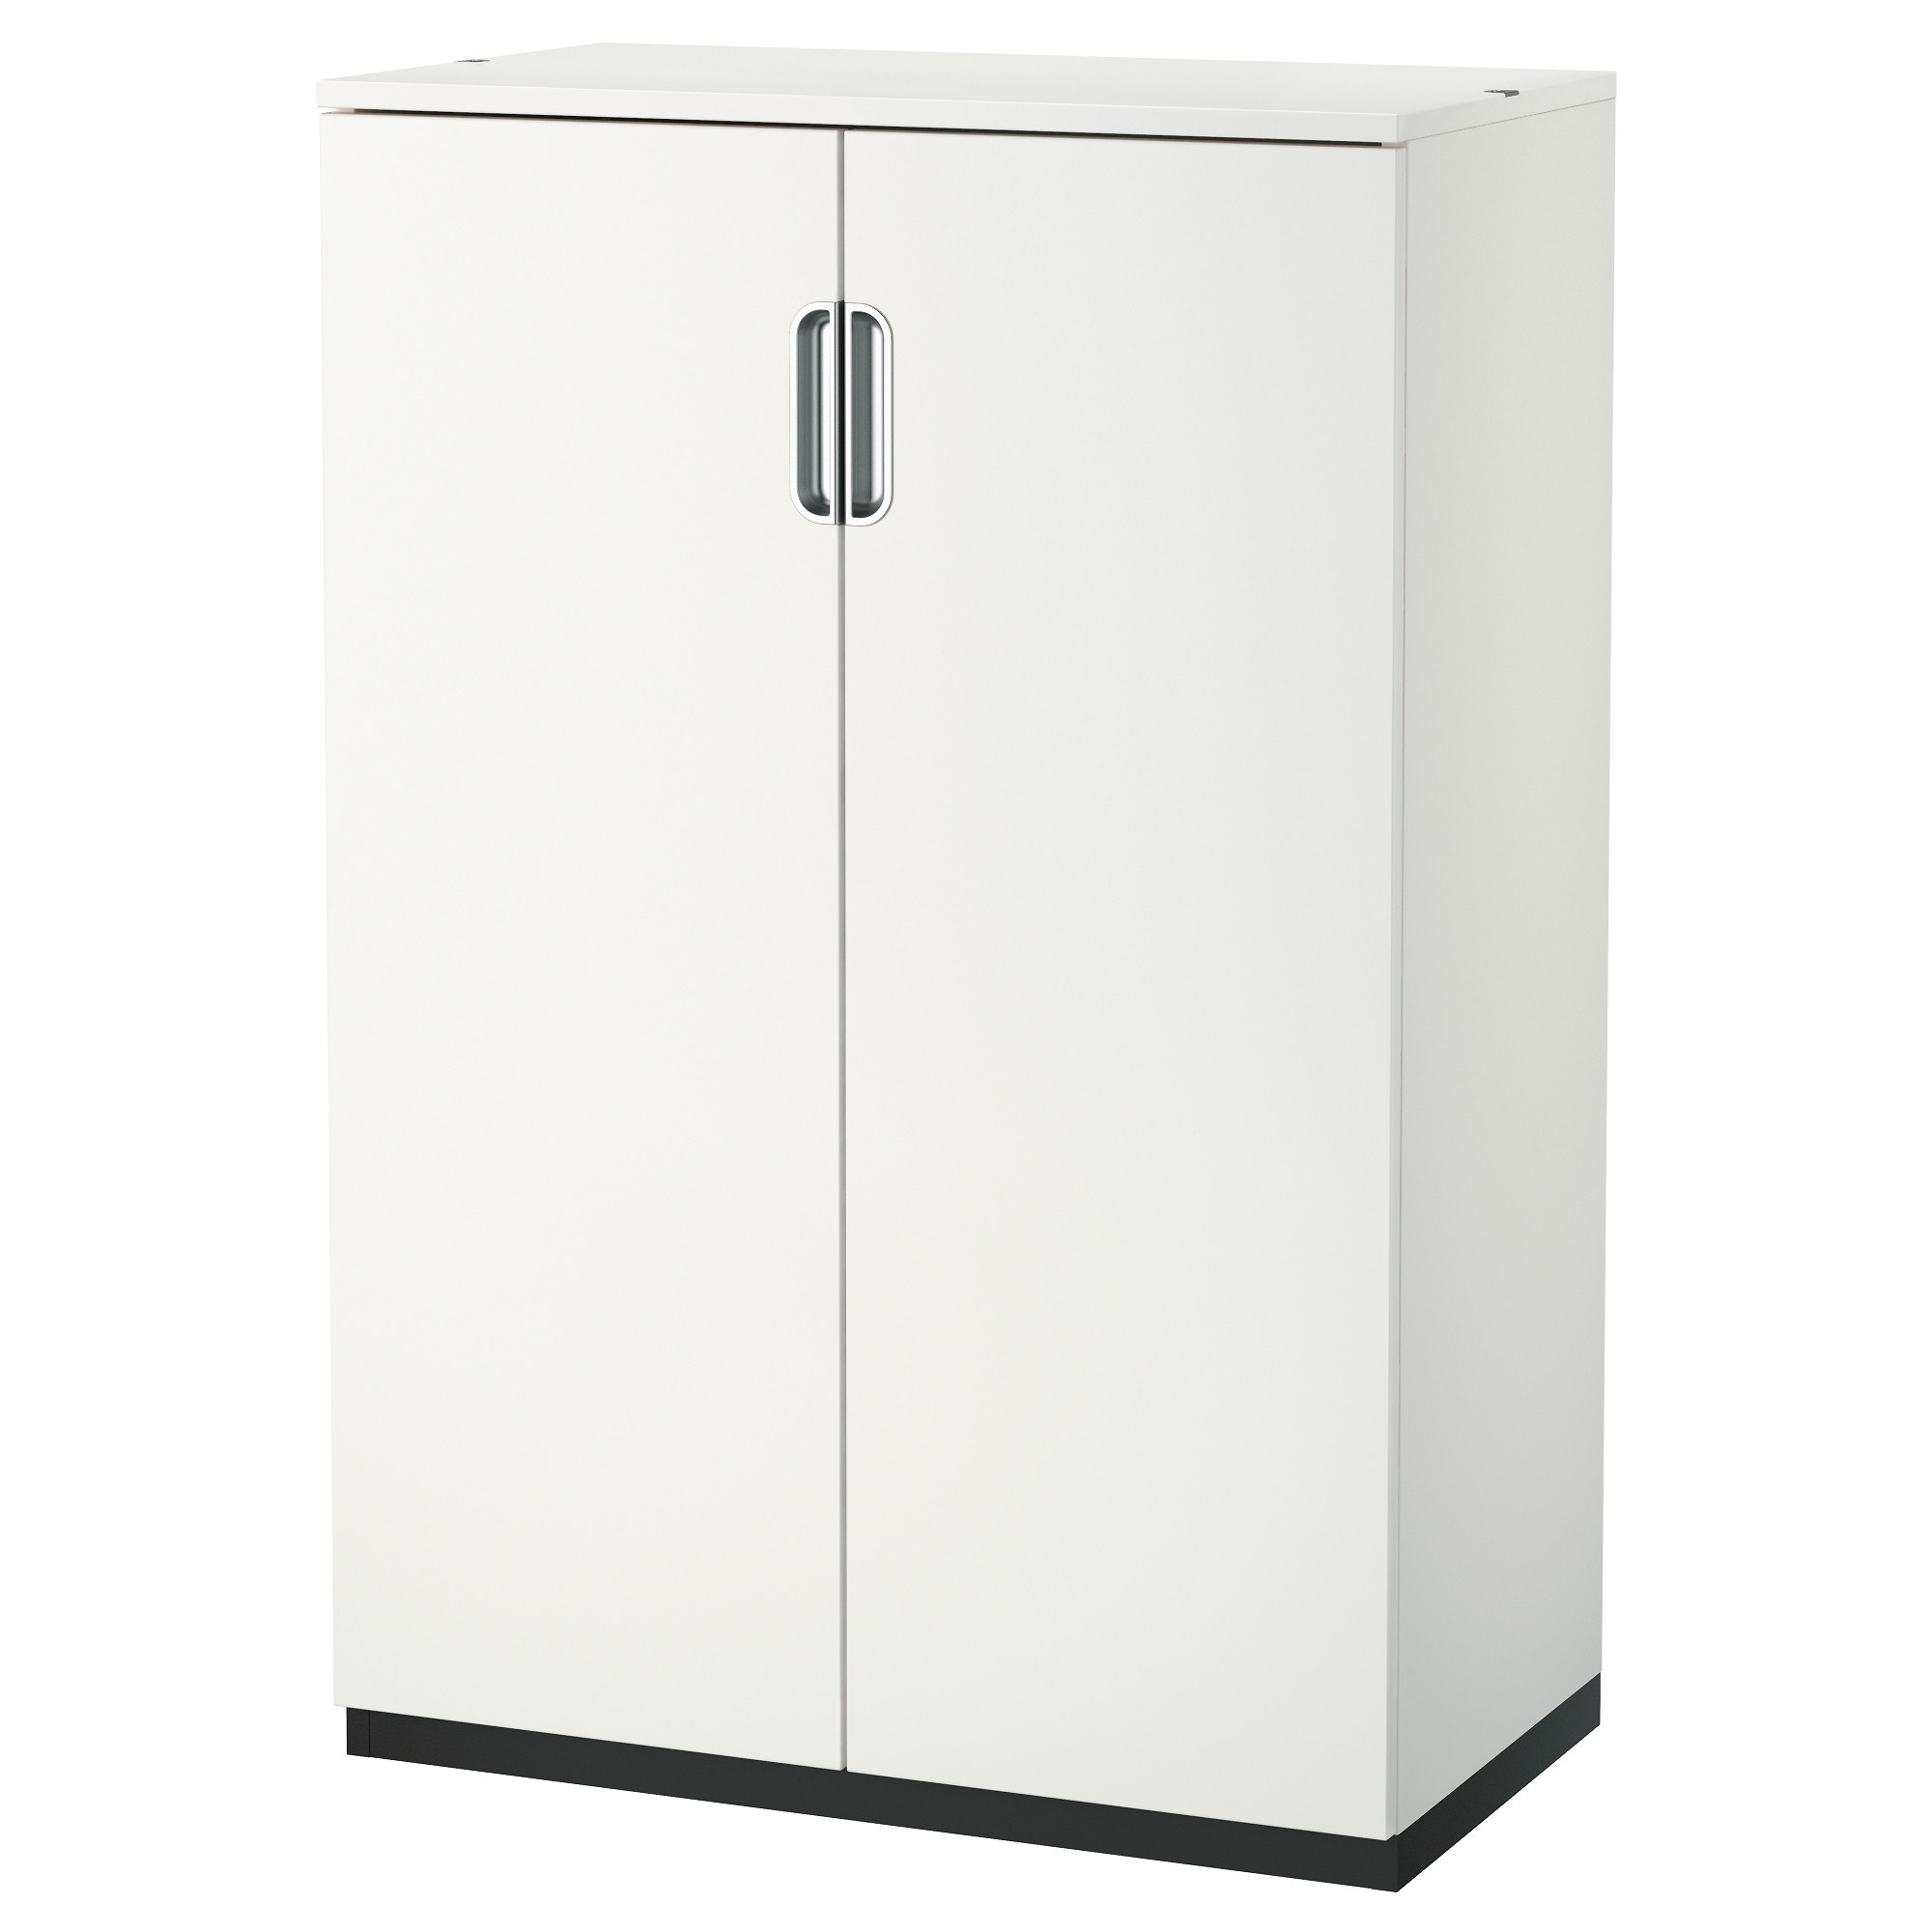 Delicieux GALANT Cabinet With Doors   White   IKEA